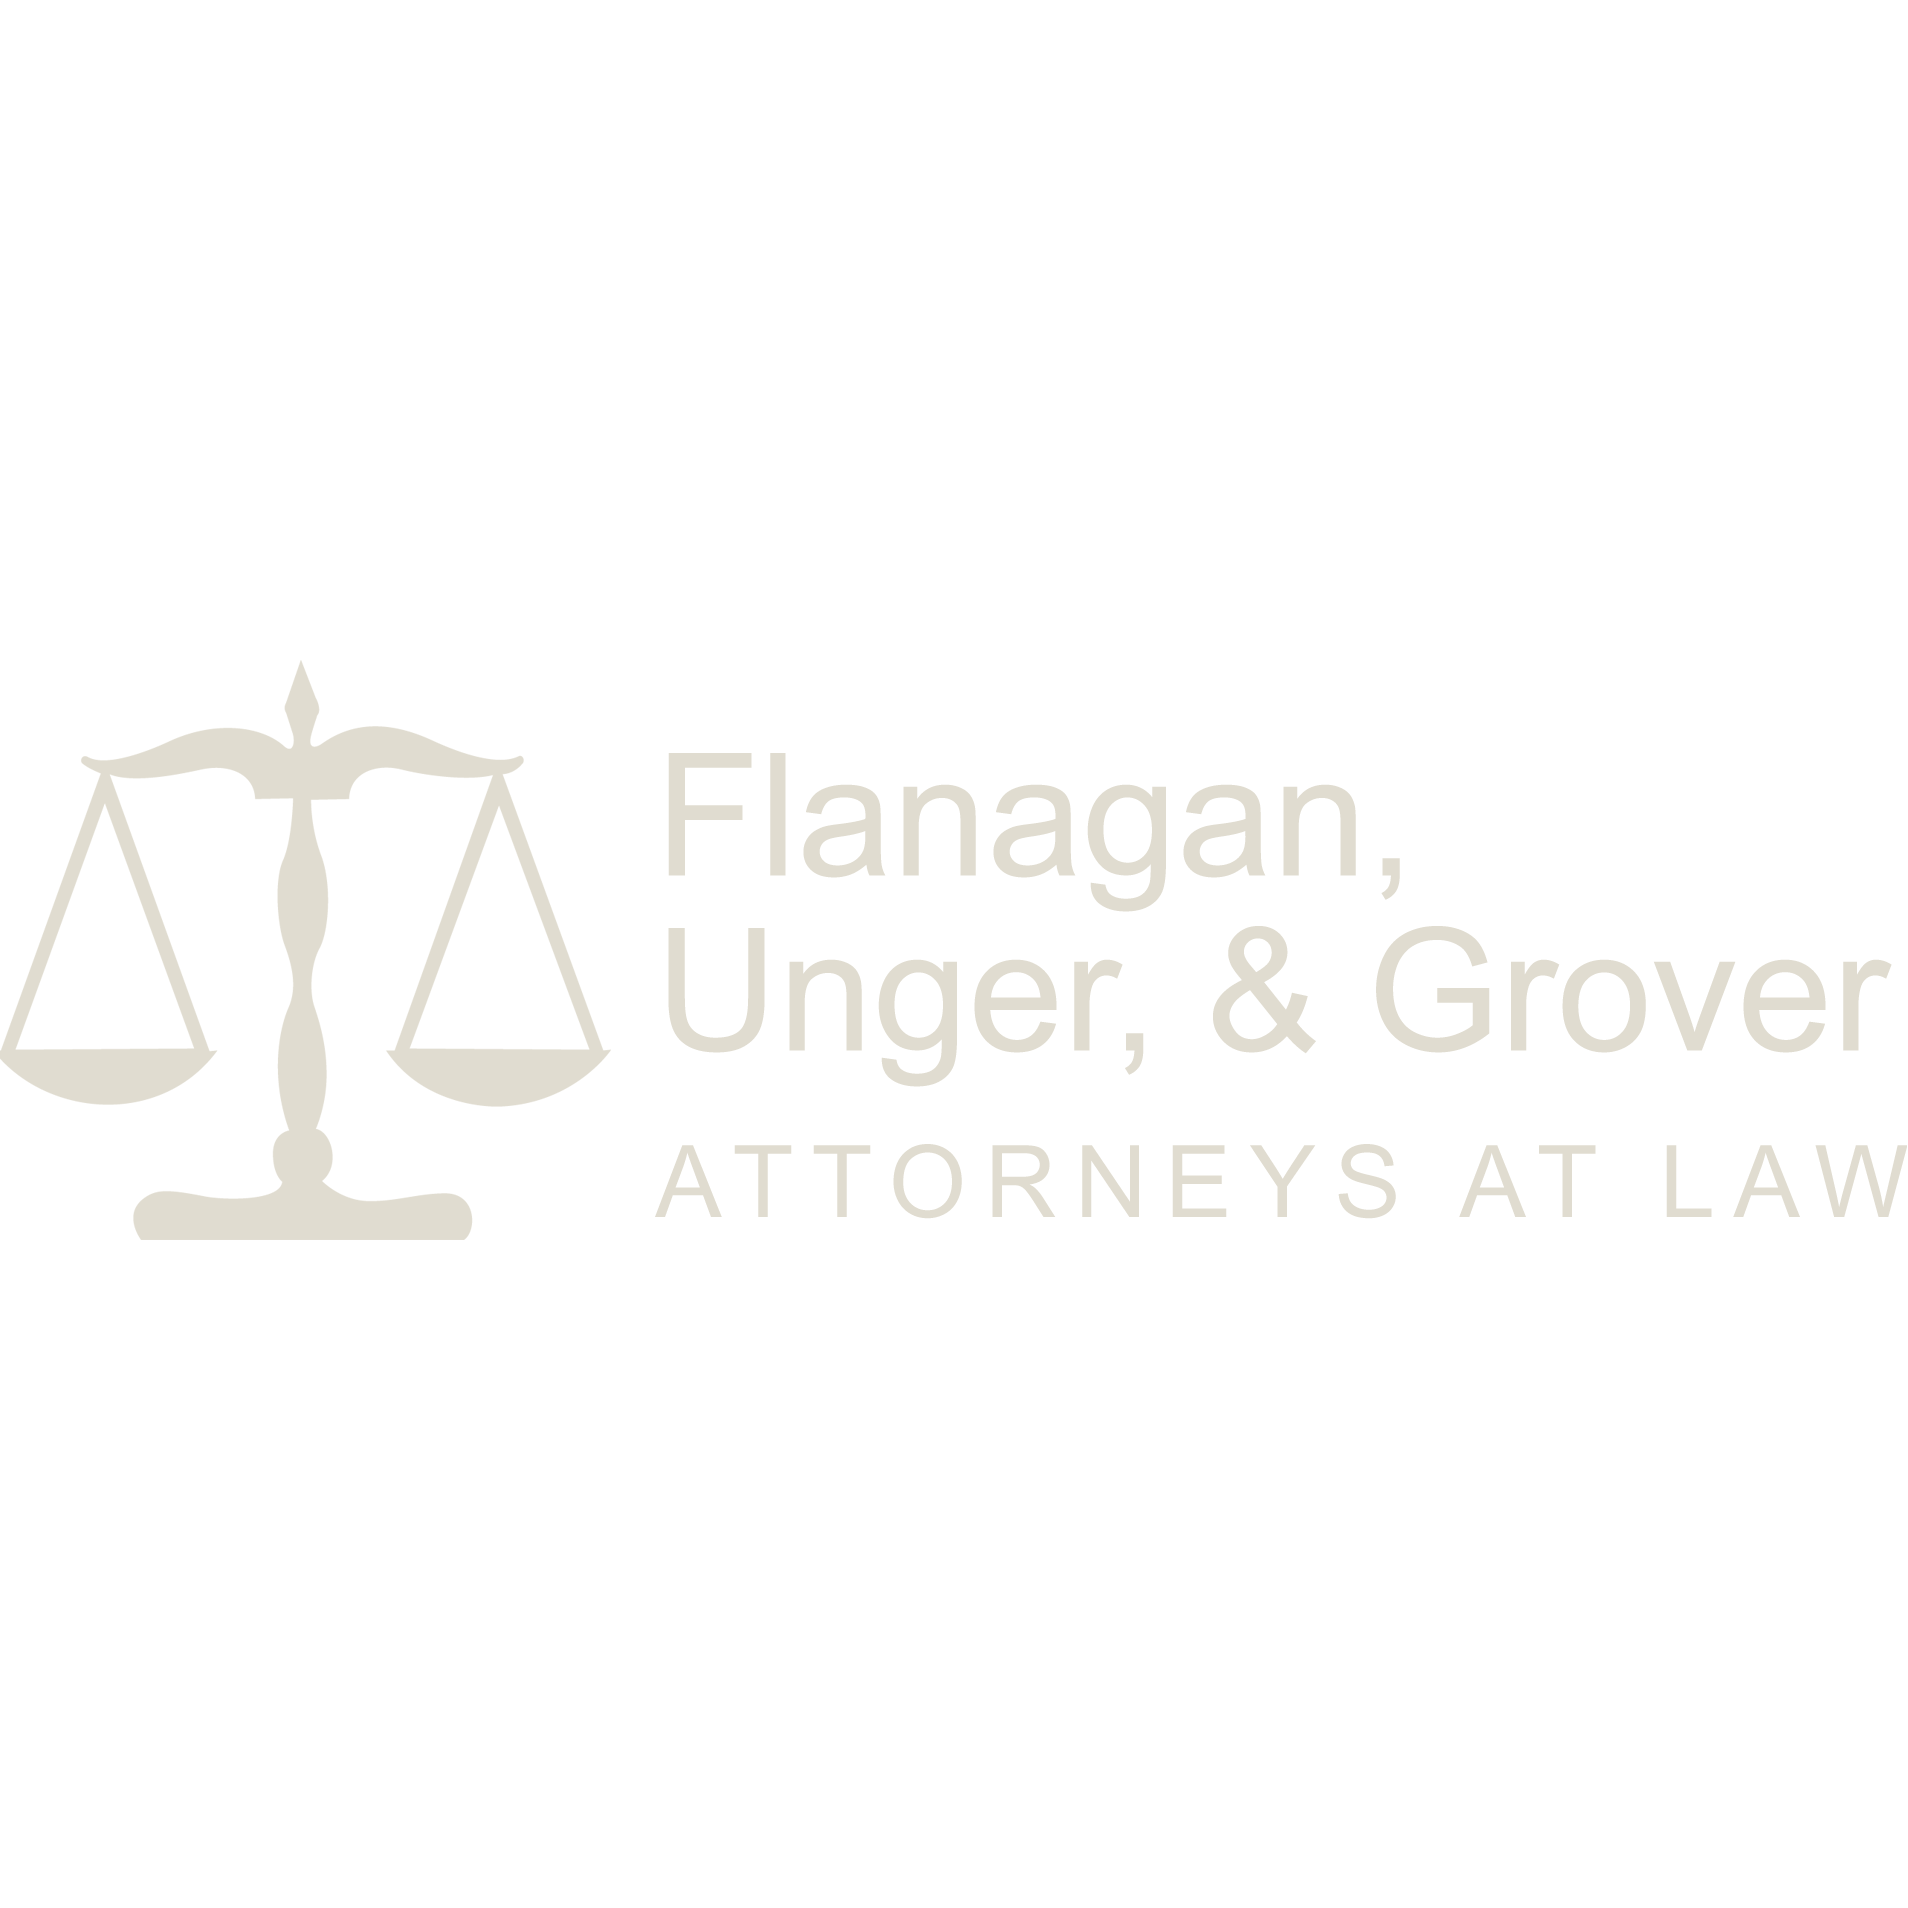 Flanagan, Unger & Grover Attorneys at Law